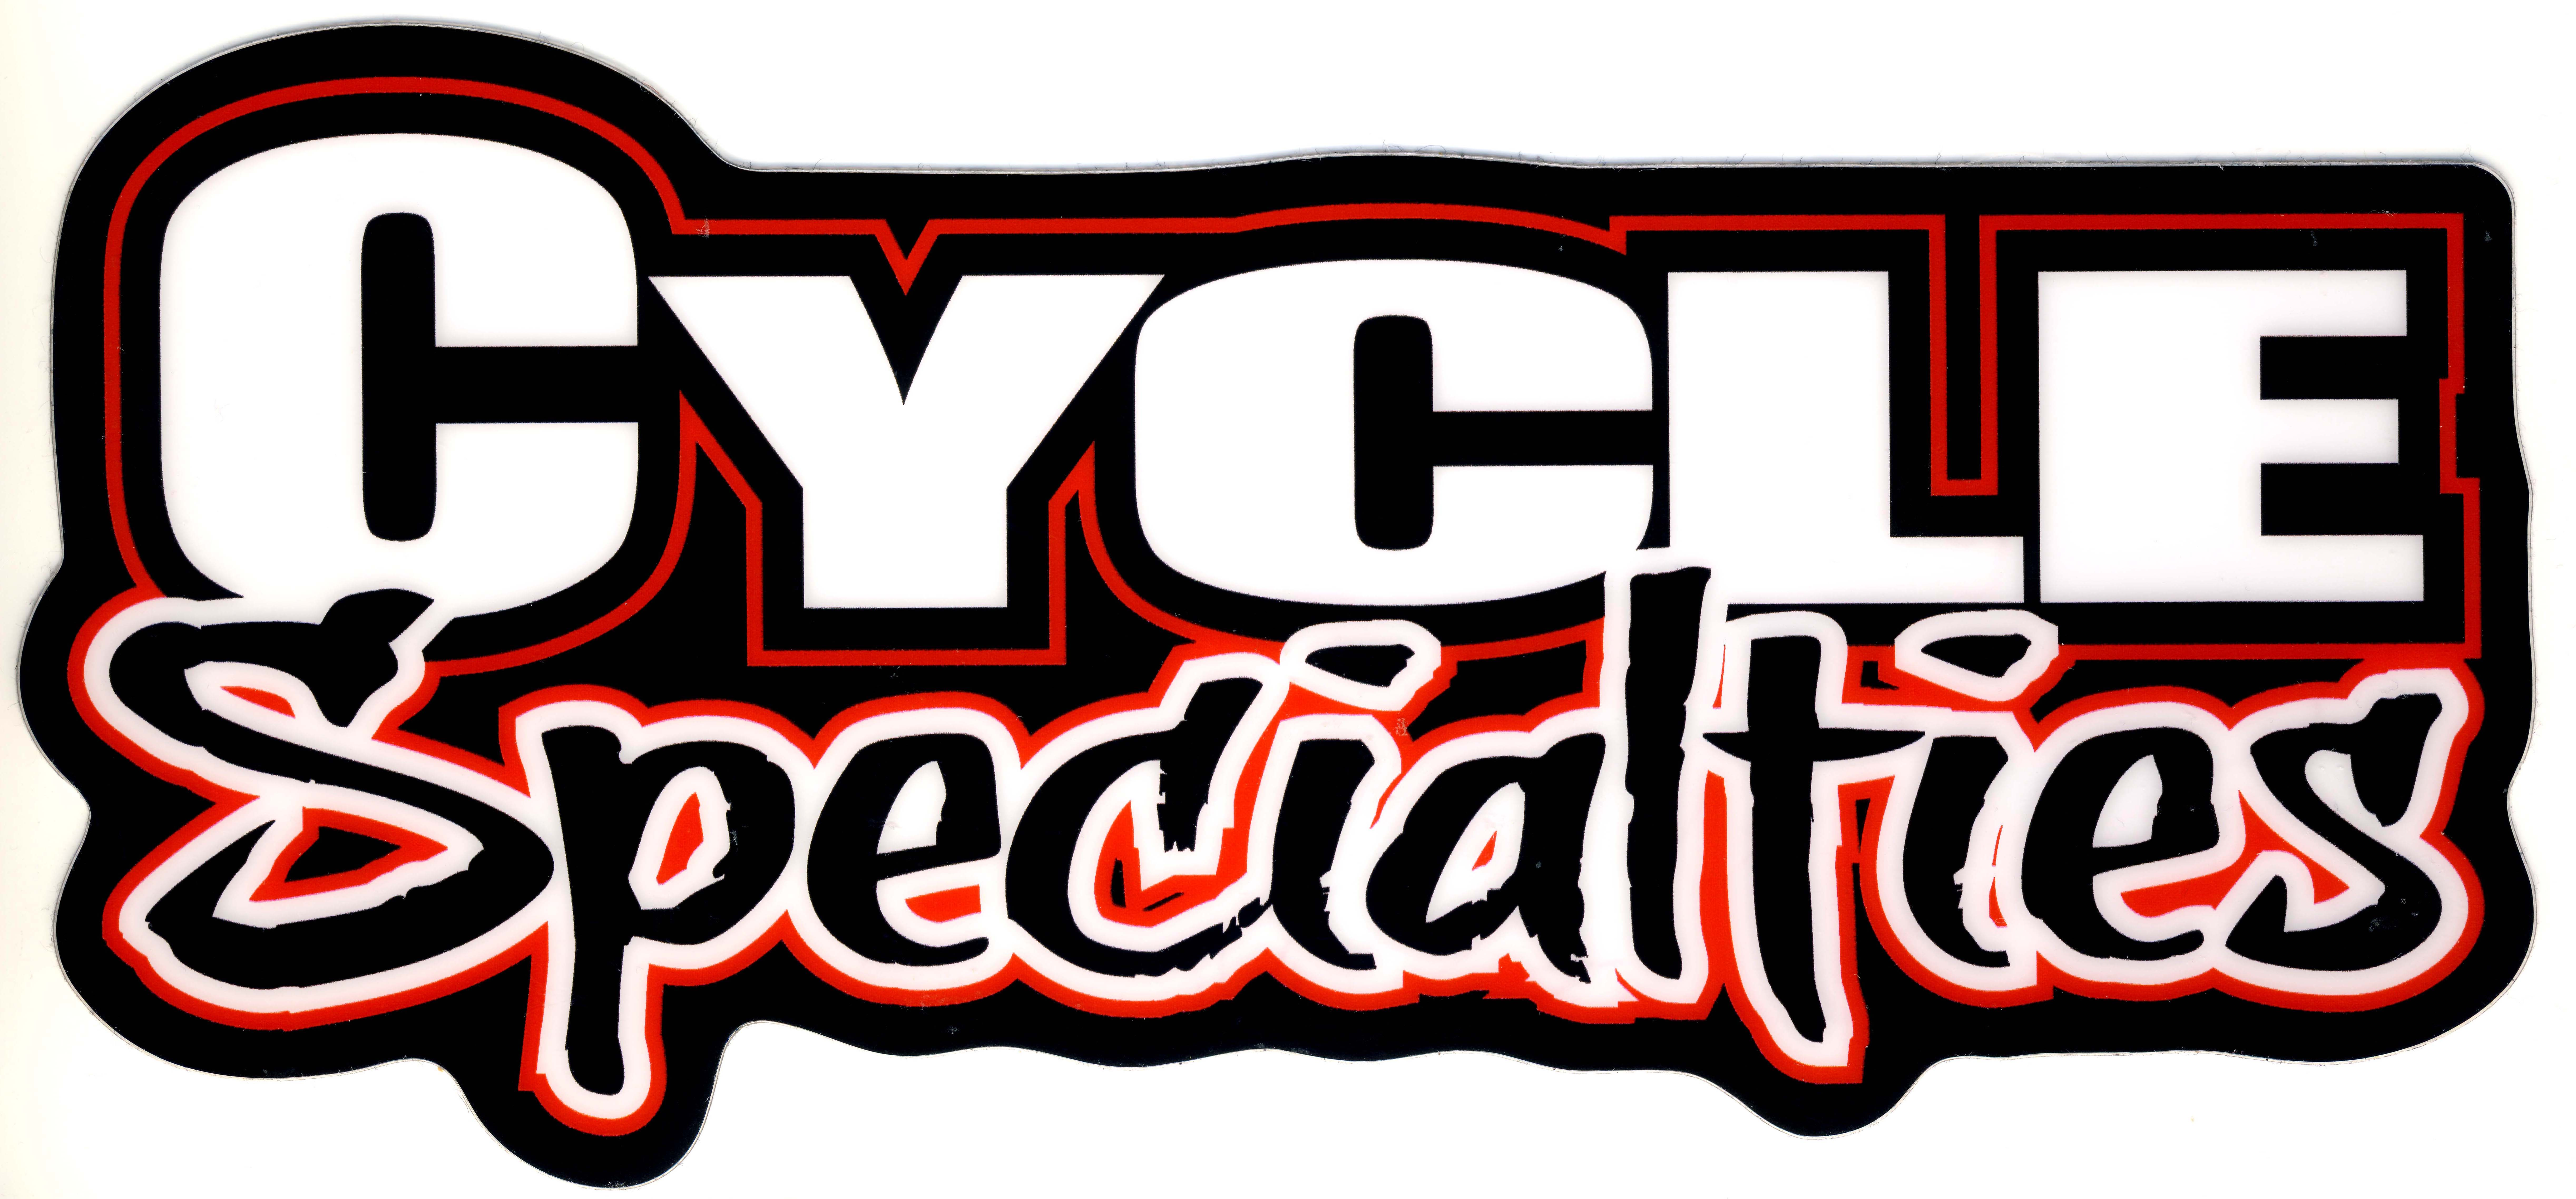 Cycle Specialties